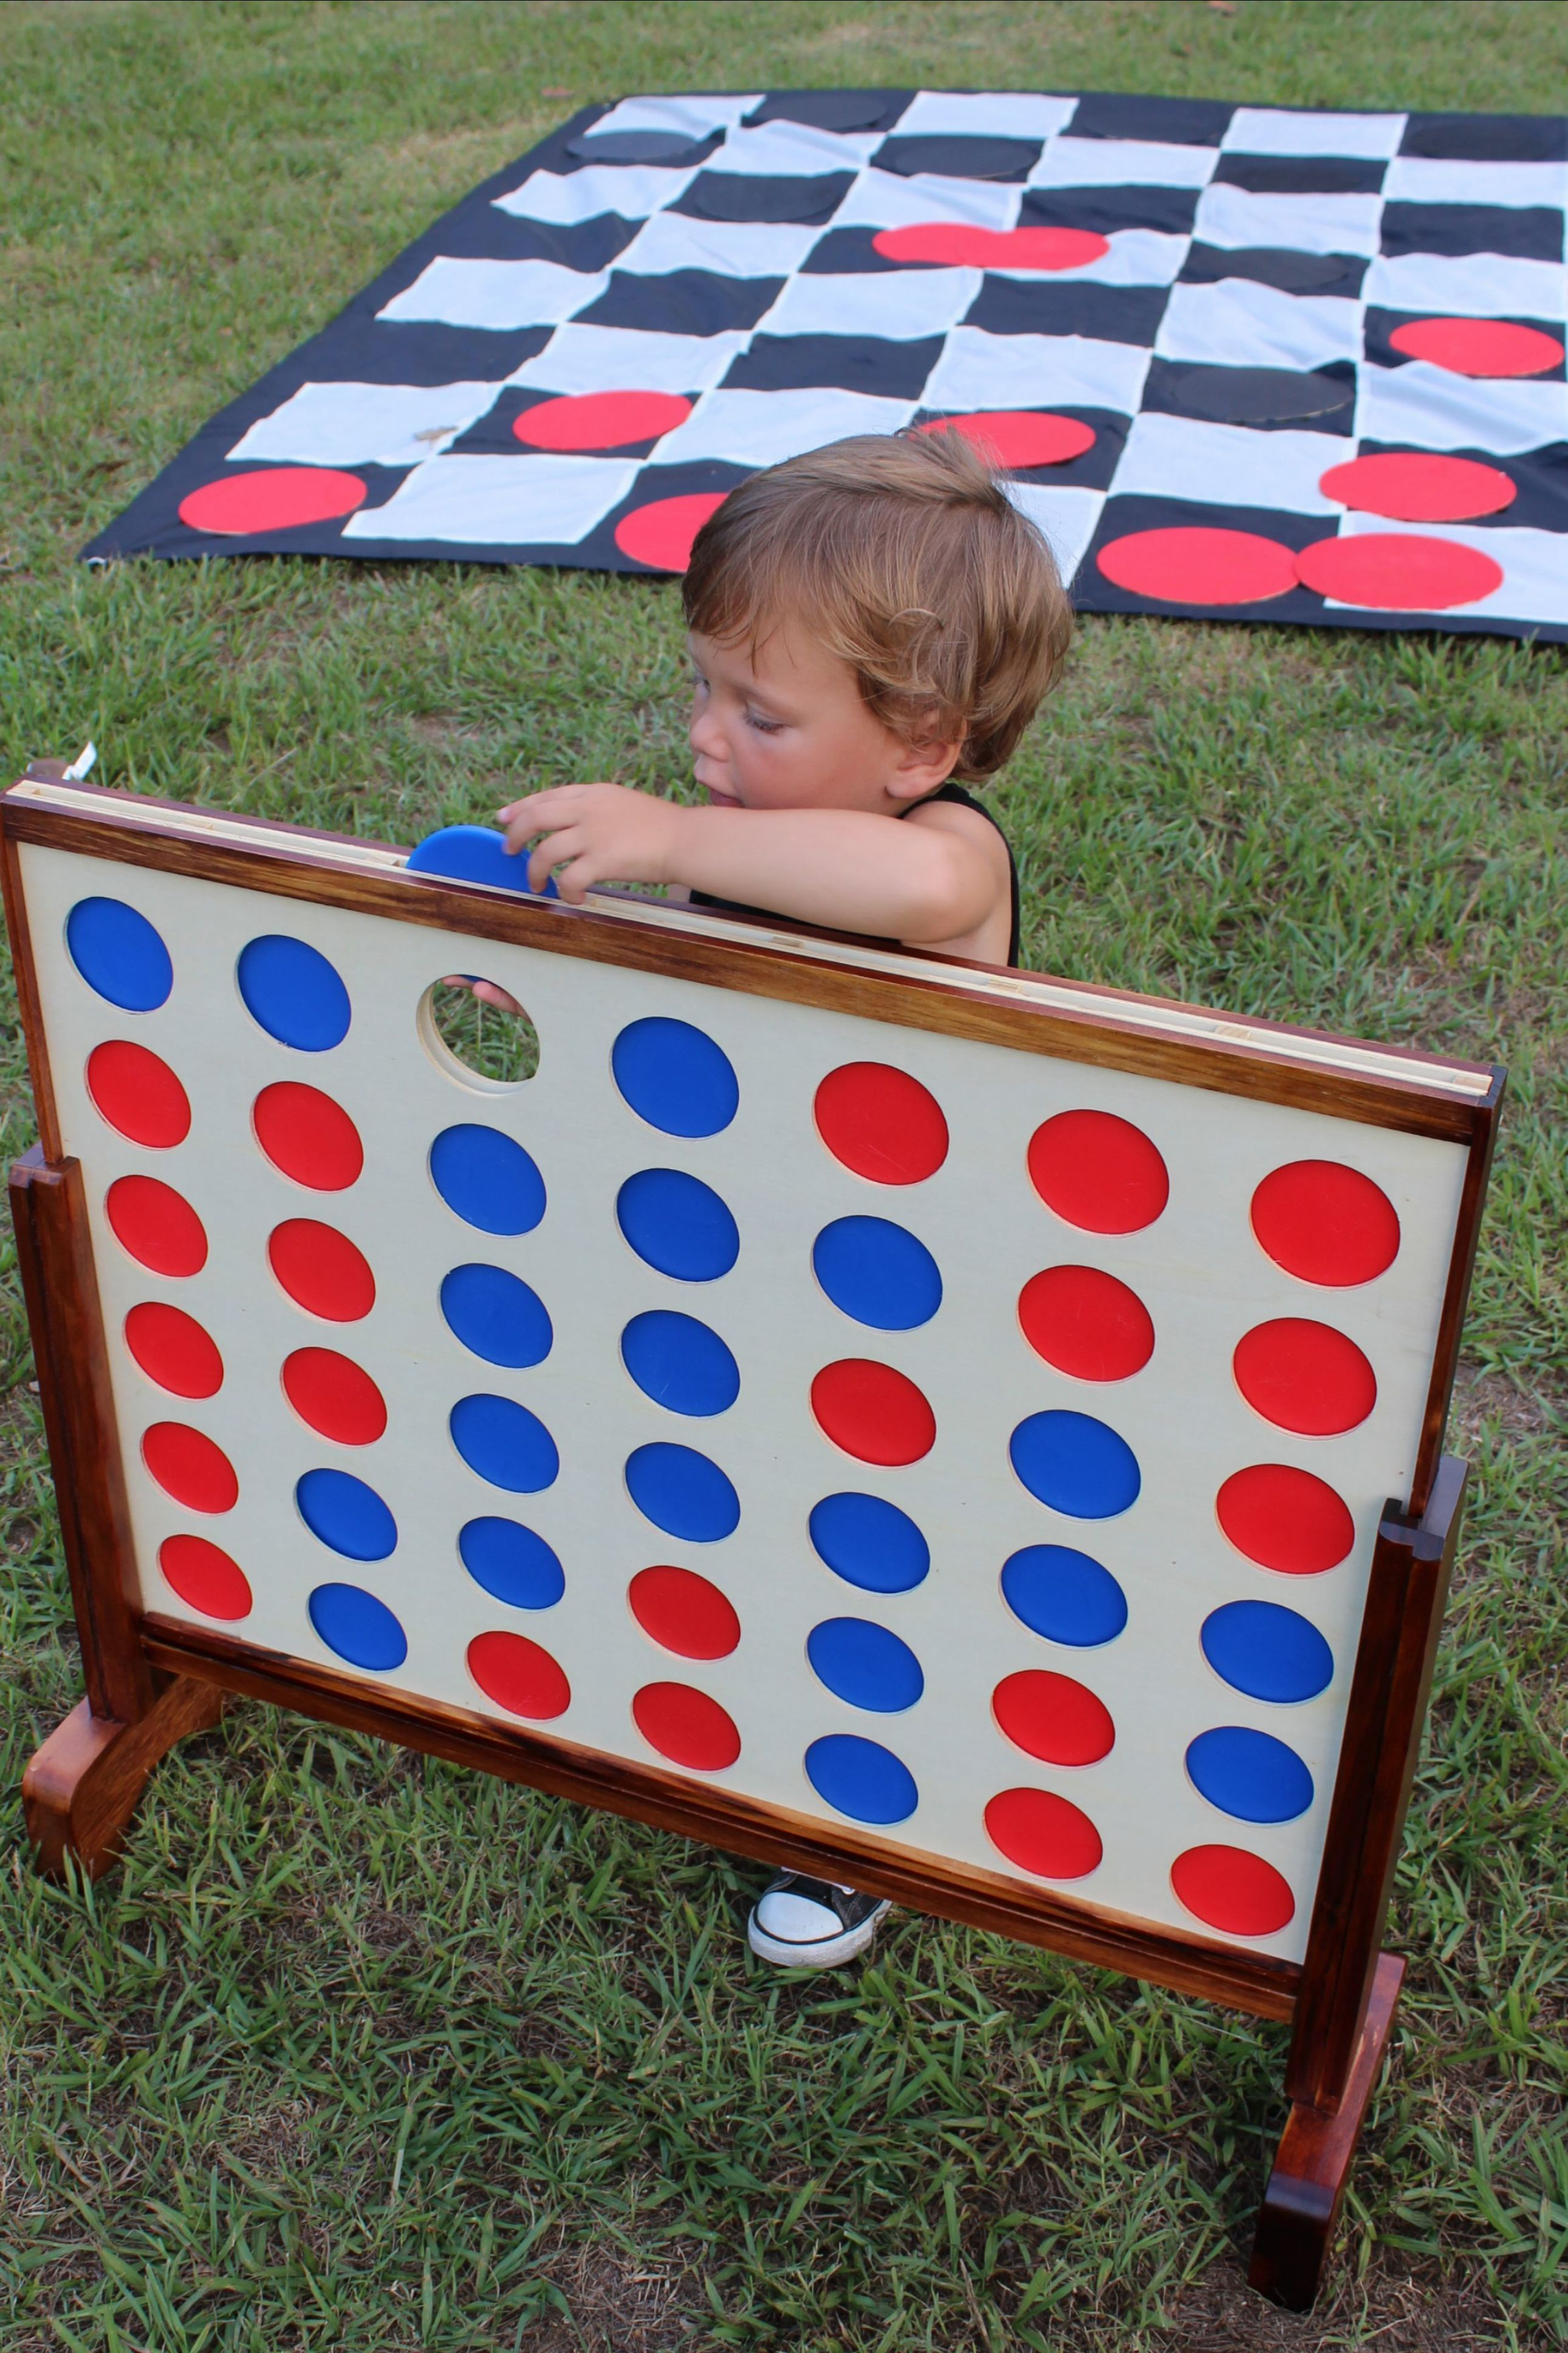 Toddler playing life-size Connect Four